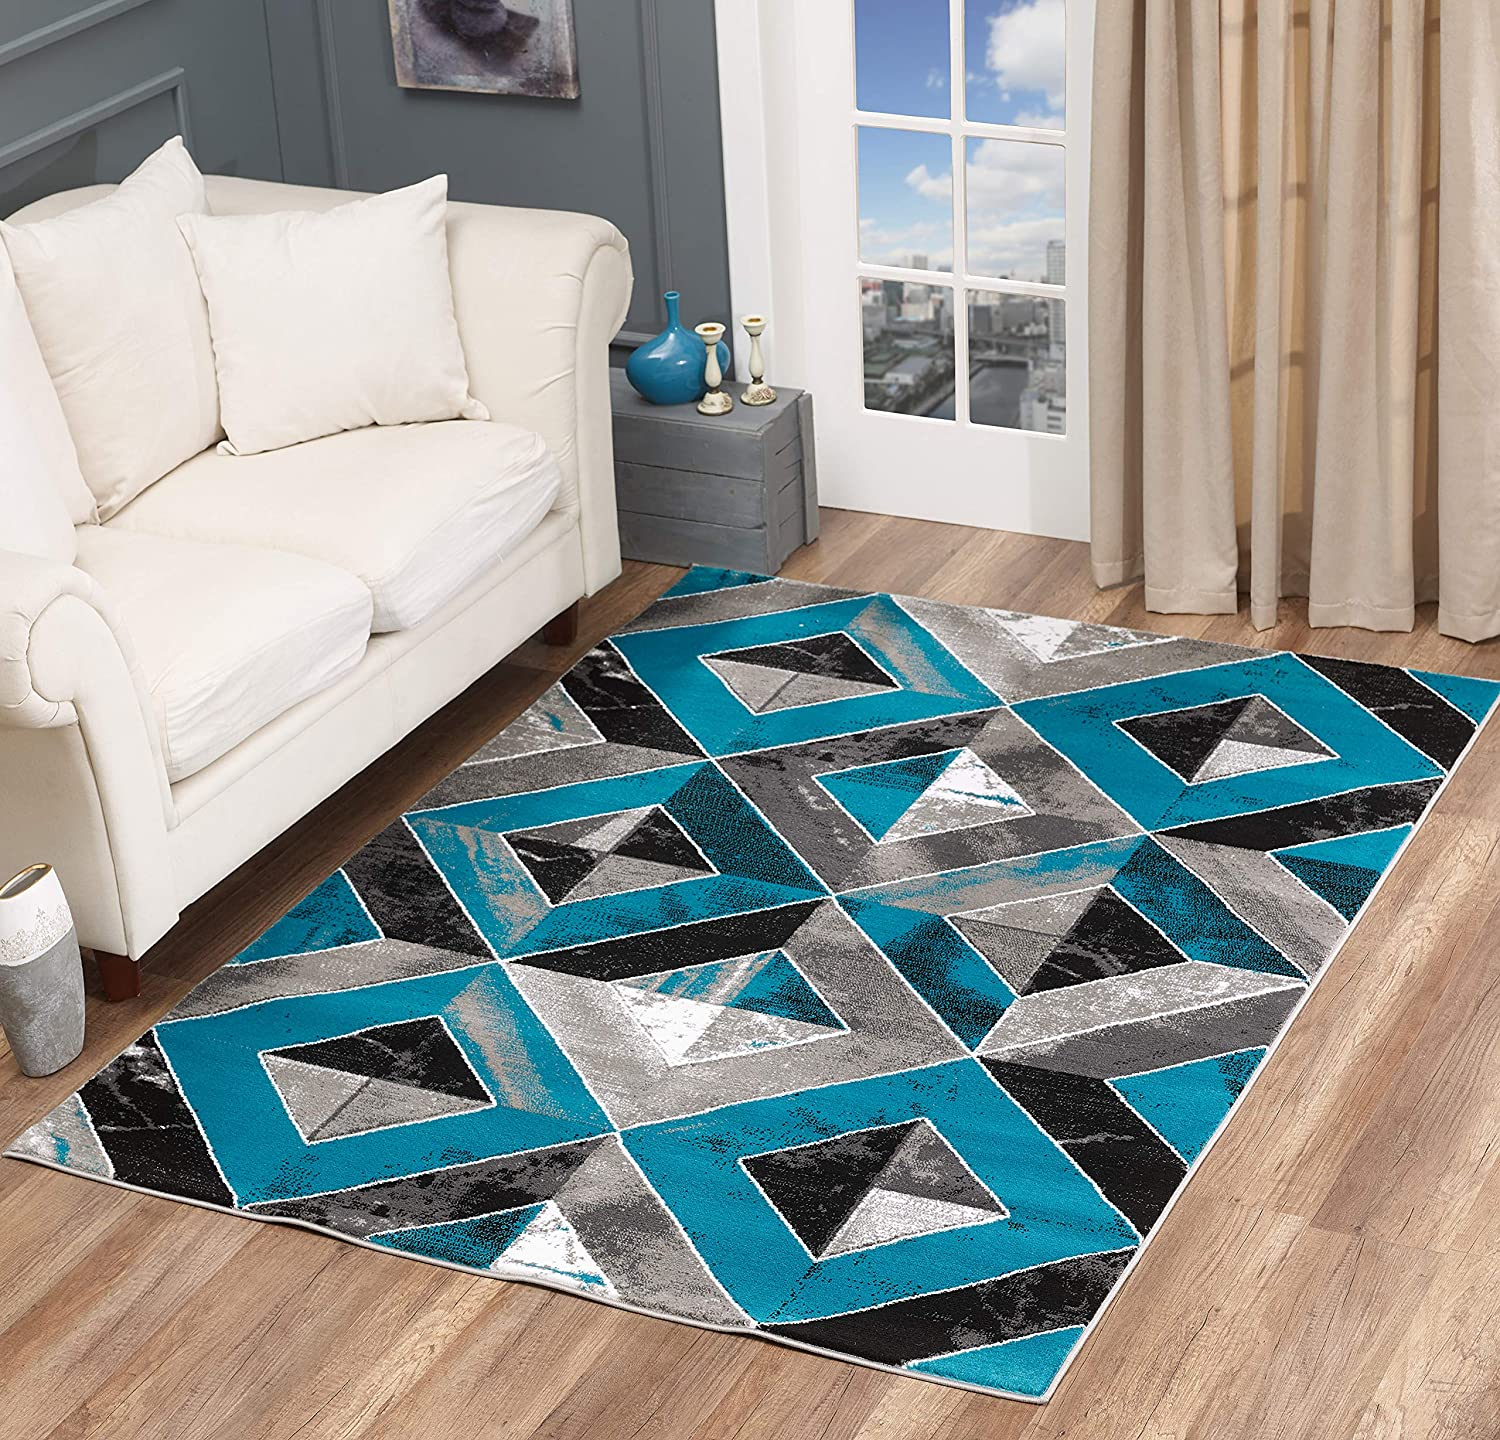 GLORY RUGS Area Rug Abstract Diamond Modern Modern Distressed Carpet Bedroom Living Room Contemporary Dining Accent Sevilla Collection 5504A (8x10, Turquoise)